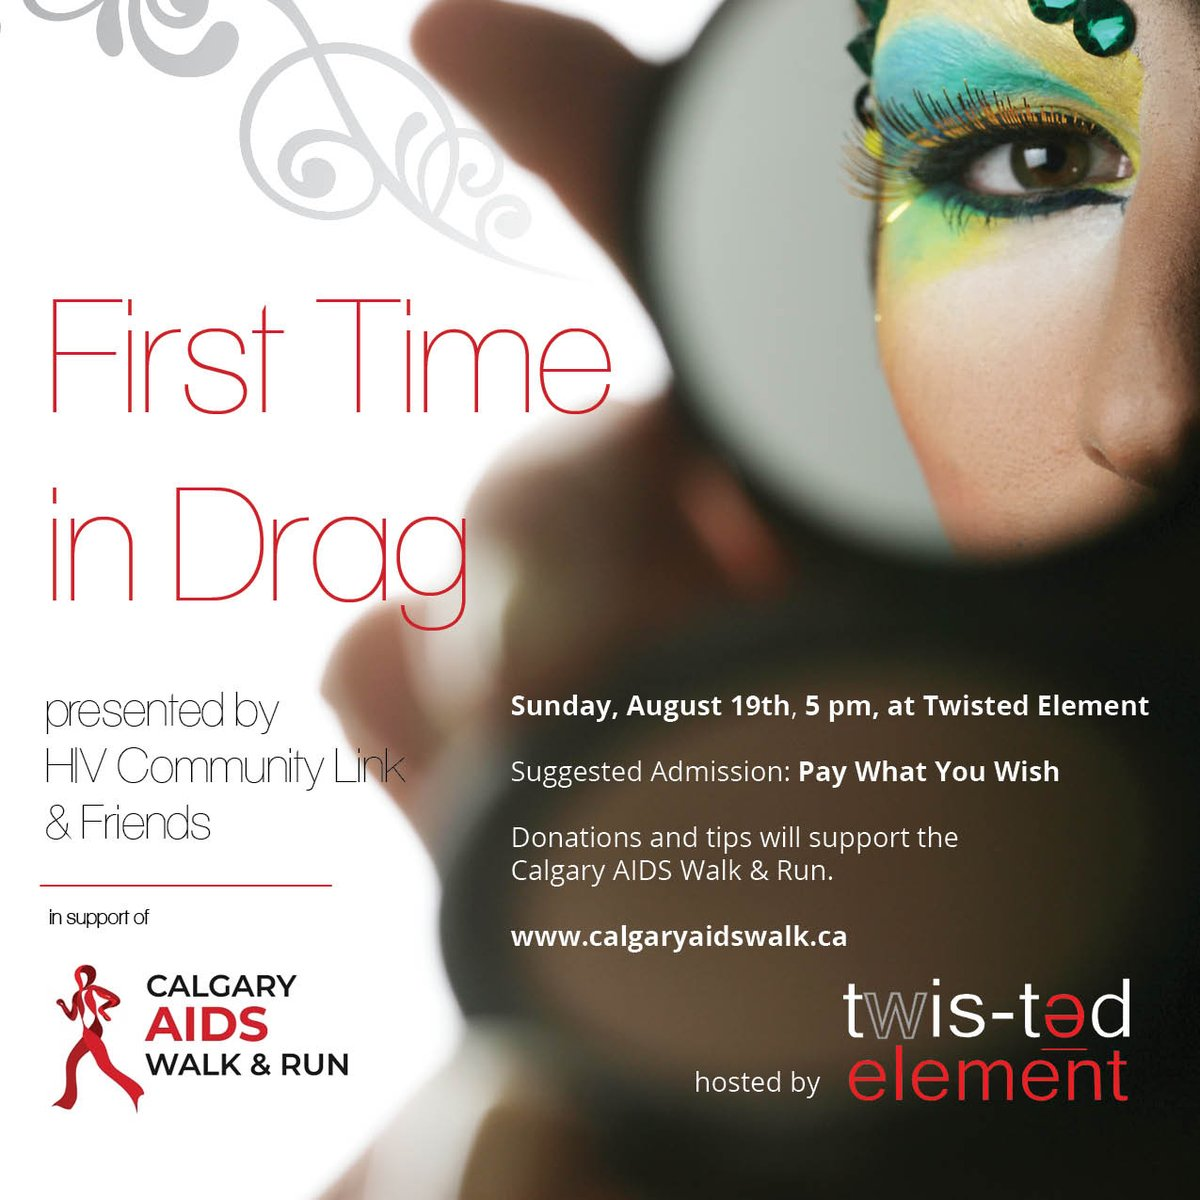 Come to Twisted Element this Sunday at 5pm to see @HIVCommLink staff &amp; friends performing drag fro the first time. We have amazing drag performers, silent auction items, get ready to have a lot of fun while fundraising for the Calgary AIDS Walk &amp; Run #calgaryaidswalk #yycevents <br>http://pic.twitter.com/TE2vSGhQ46